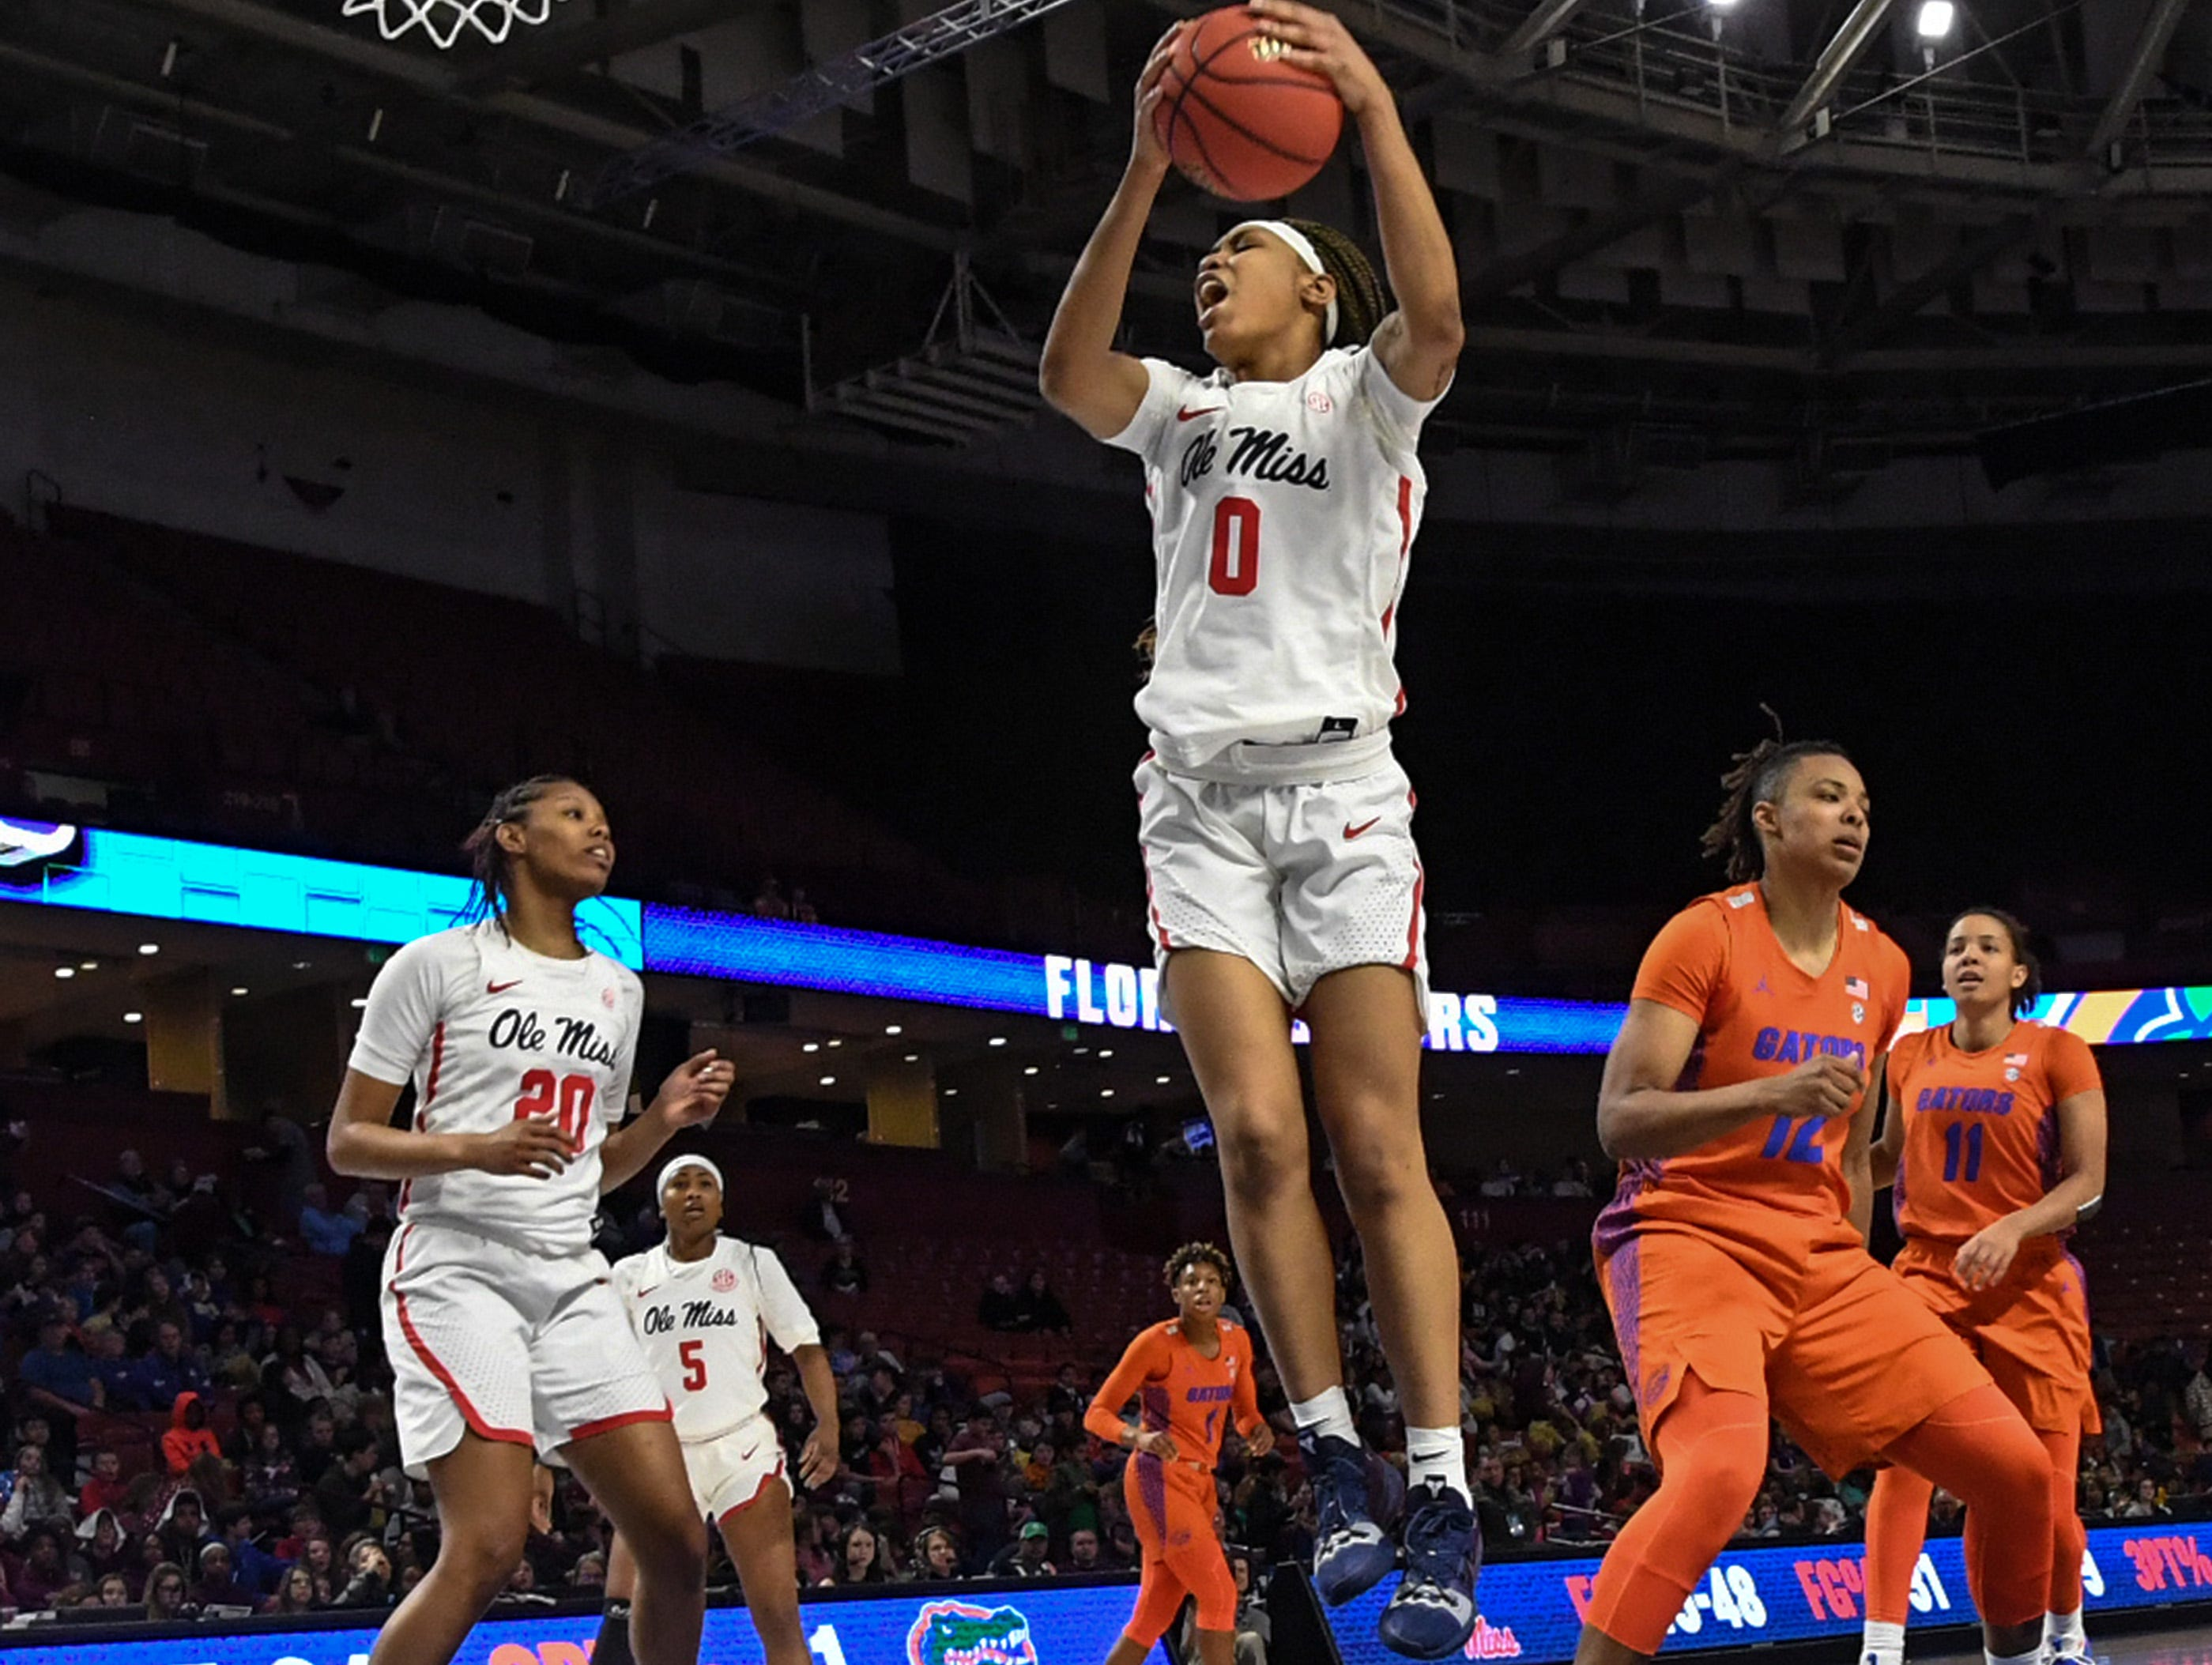 Ole Miss freshman Gabby Crawford(0) rebounds near Florida forward Zada Williams(12)during the fourth quarter of the Southeastern Conference Women's Tournament game at Bon Secour Wellness Arena in Greenville Wednesday, March 6, 2019.